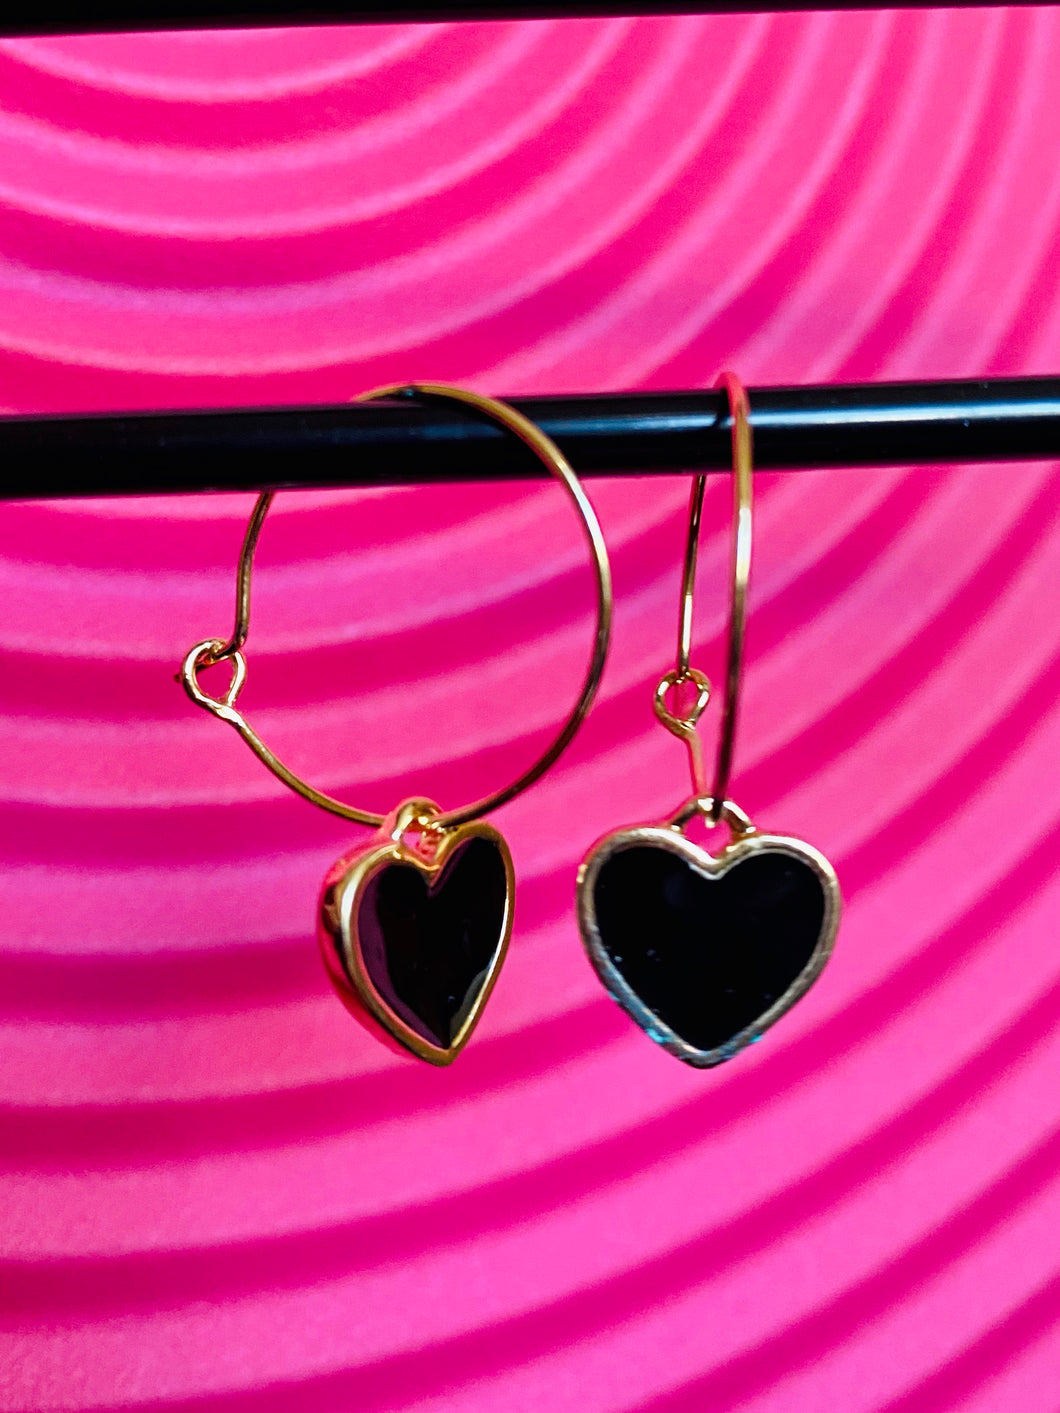 Vintage Inspired Earrings Hoops in Gold with Black Heart Pendant